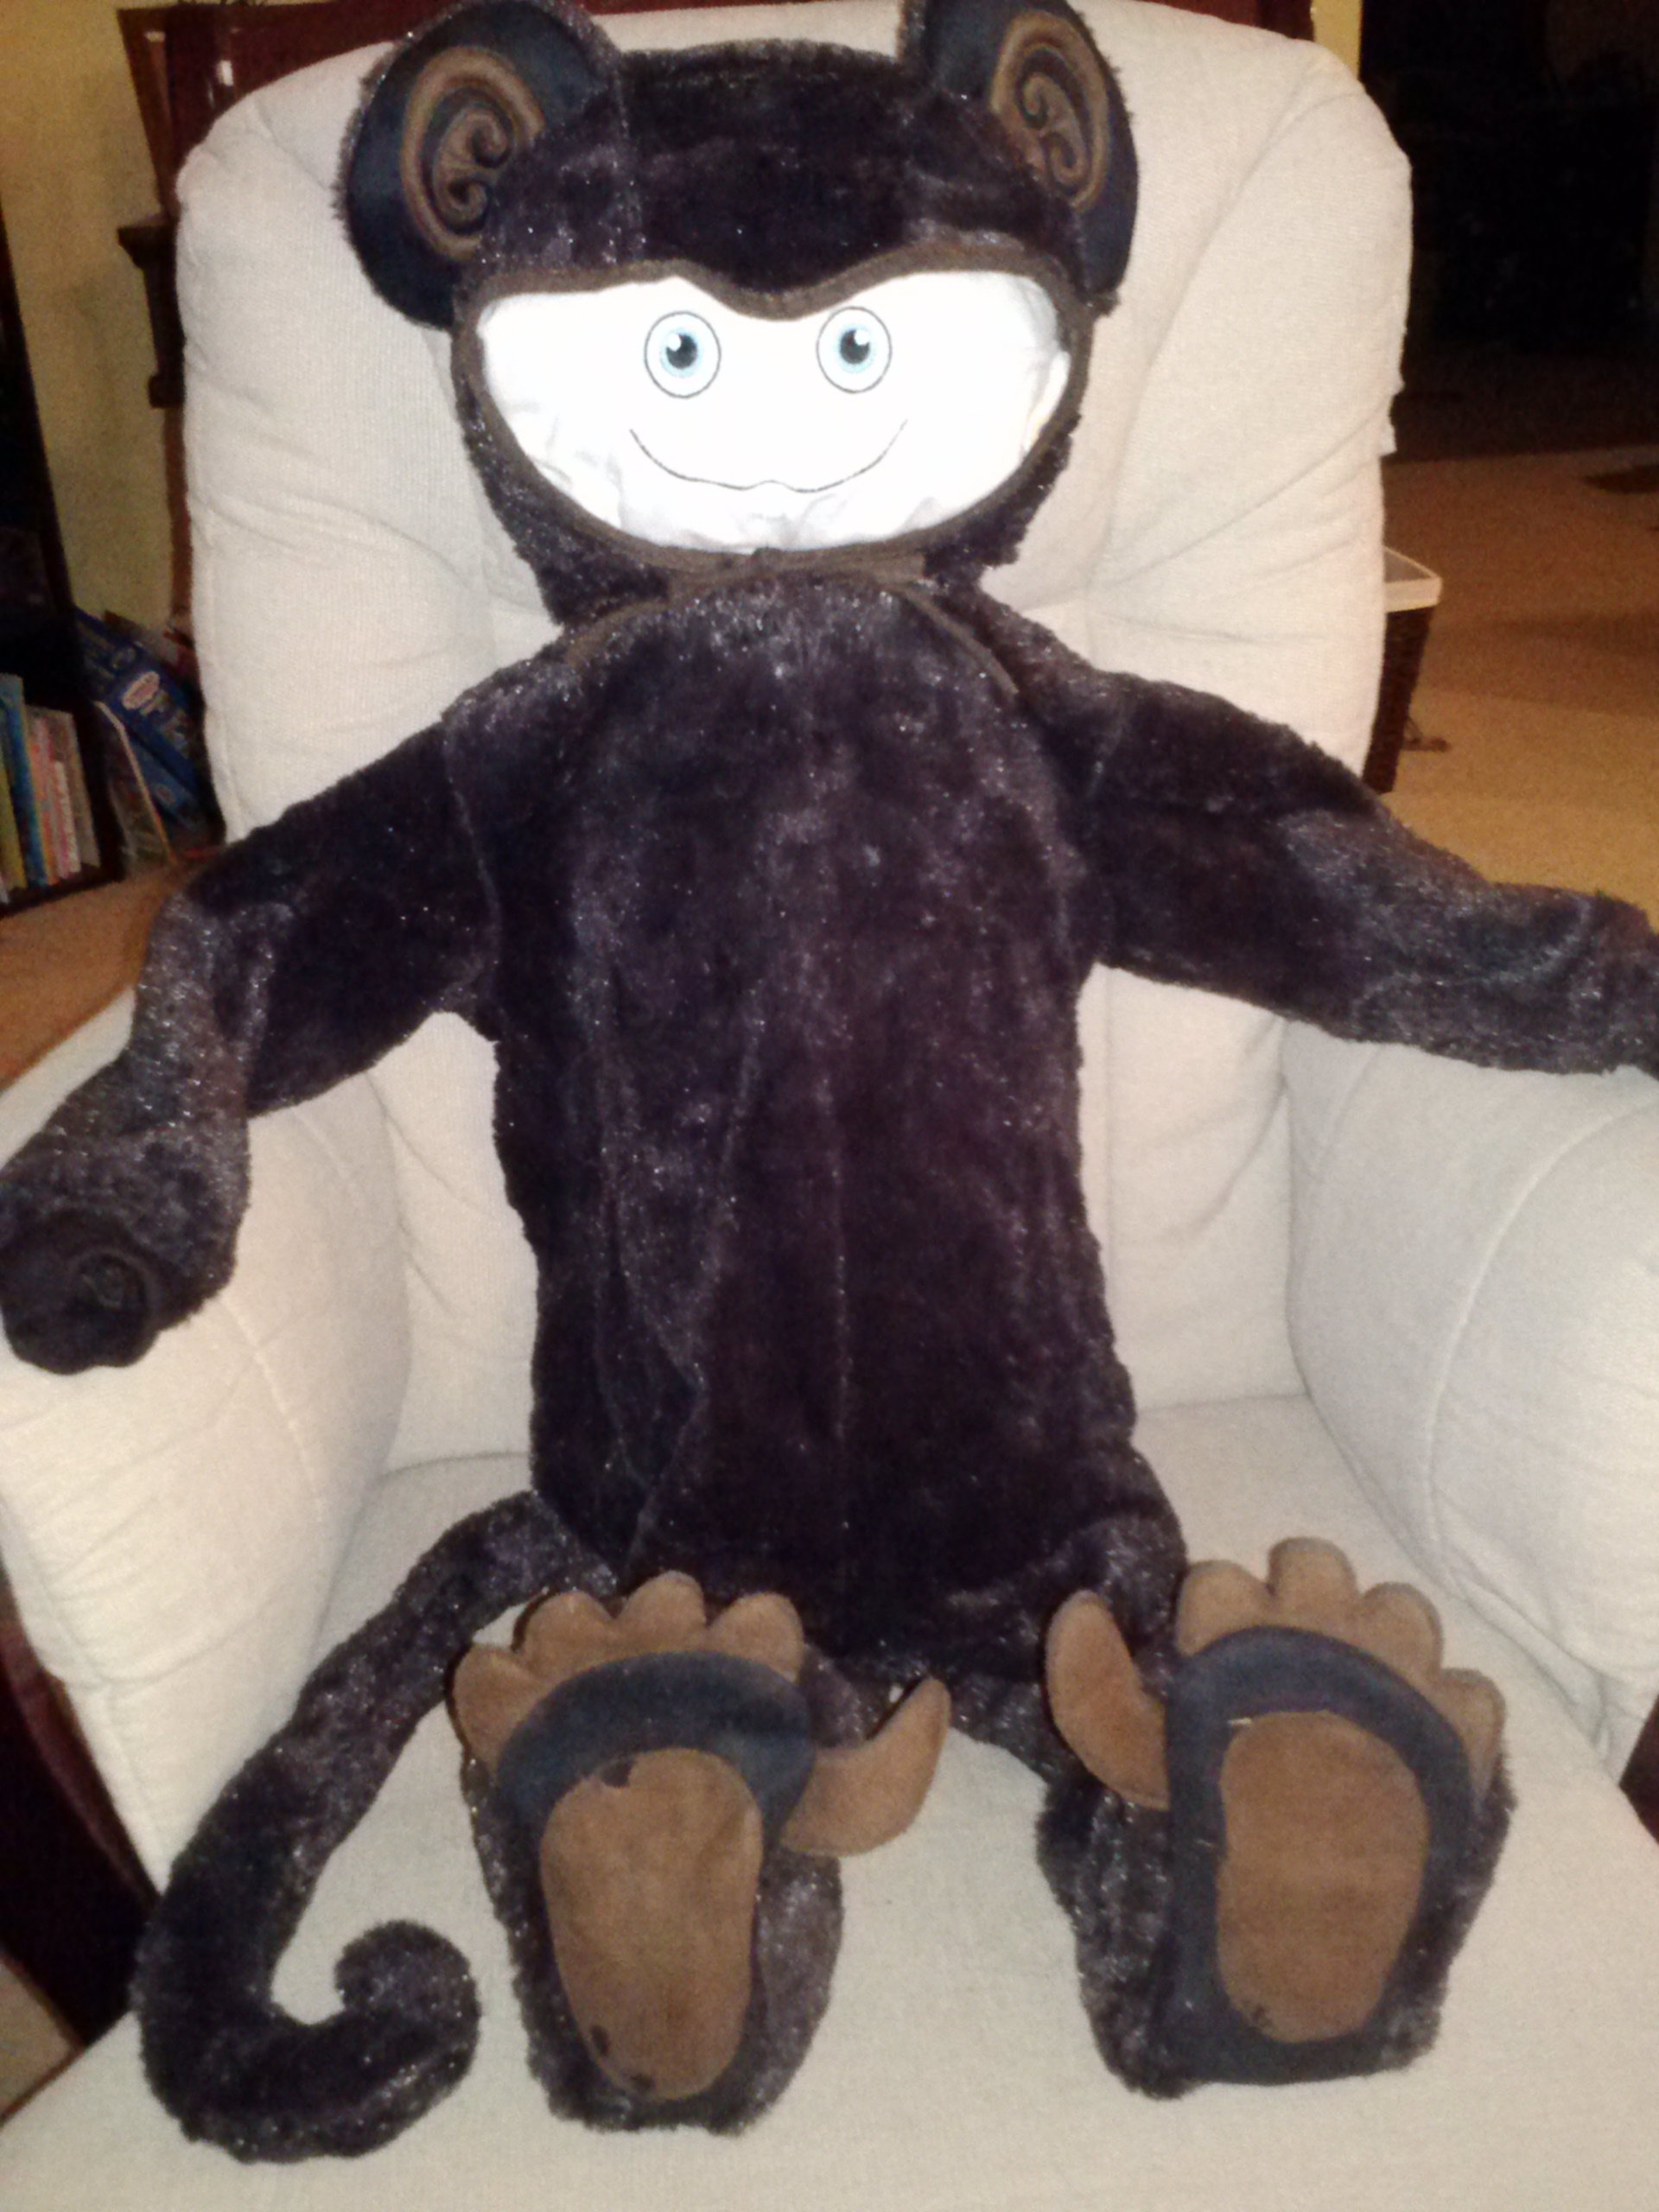 Dress-up time with McStuffy O'Fluffigan: Bear or monkey? Who can tell?